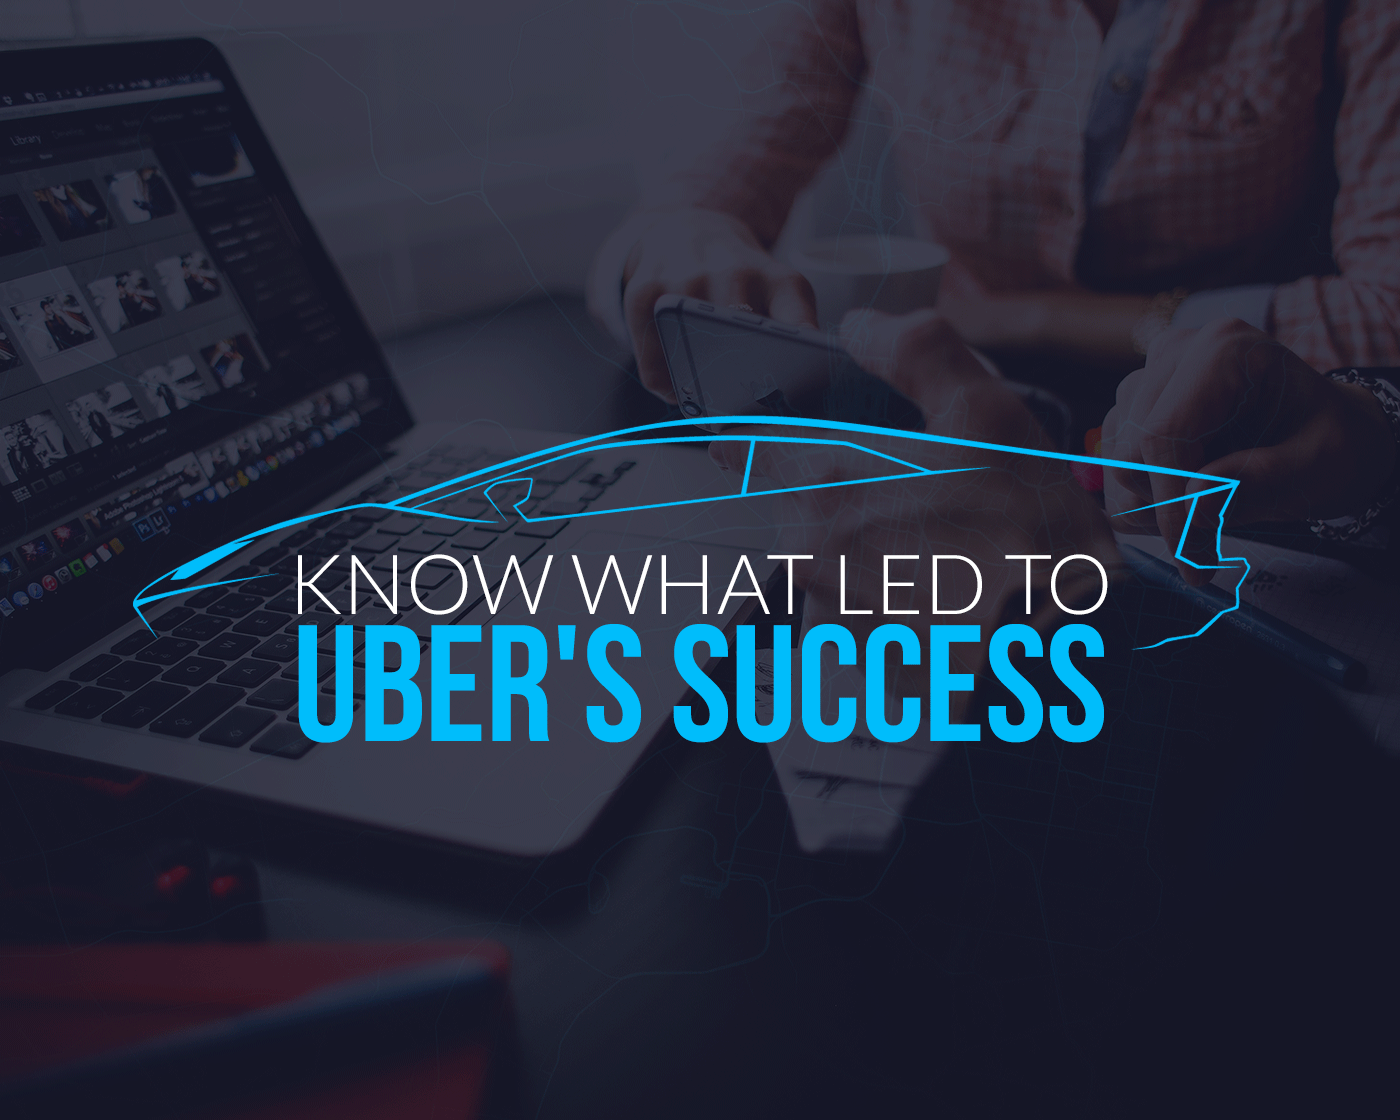 Uber Business Model Canvas: Know what led Uber to success